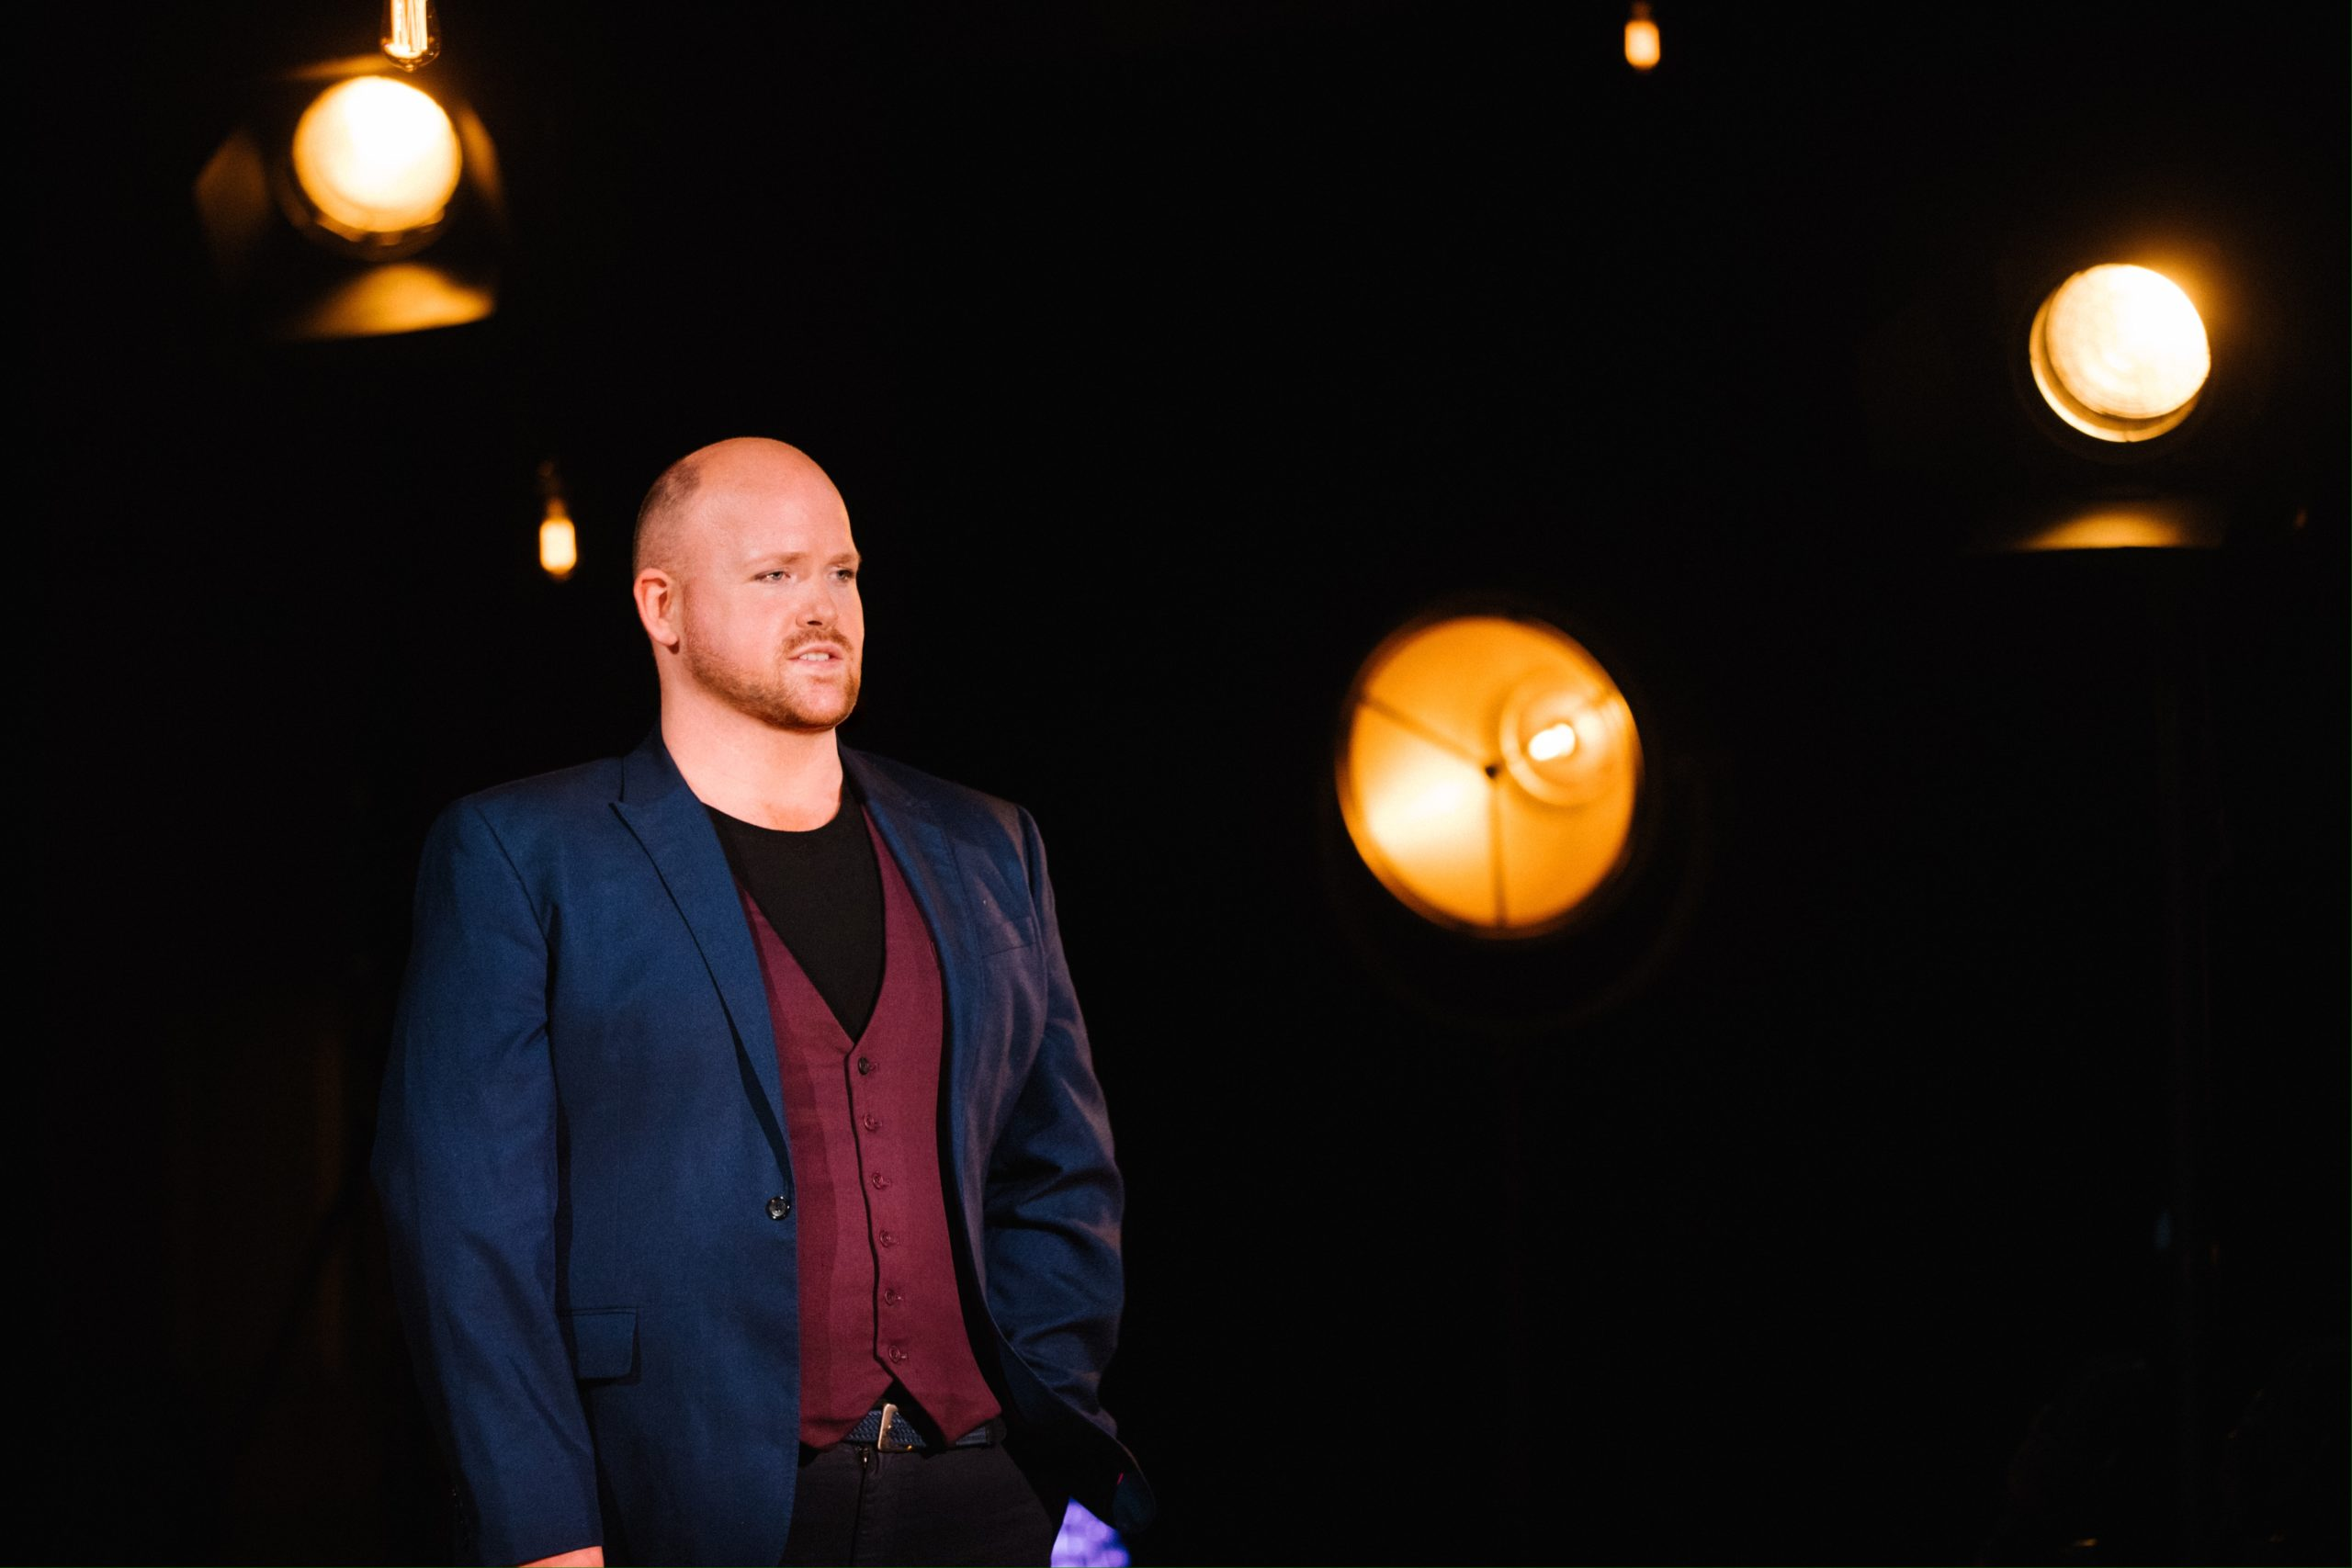 Nicky Spence, tenor, classical, singer, voice, vocal, sing, stage, performer, culture, Scottish, Royal Opera